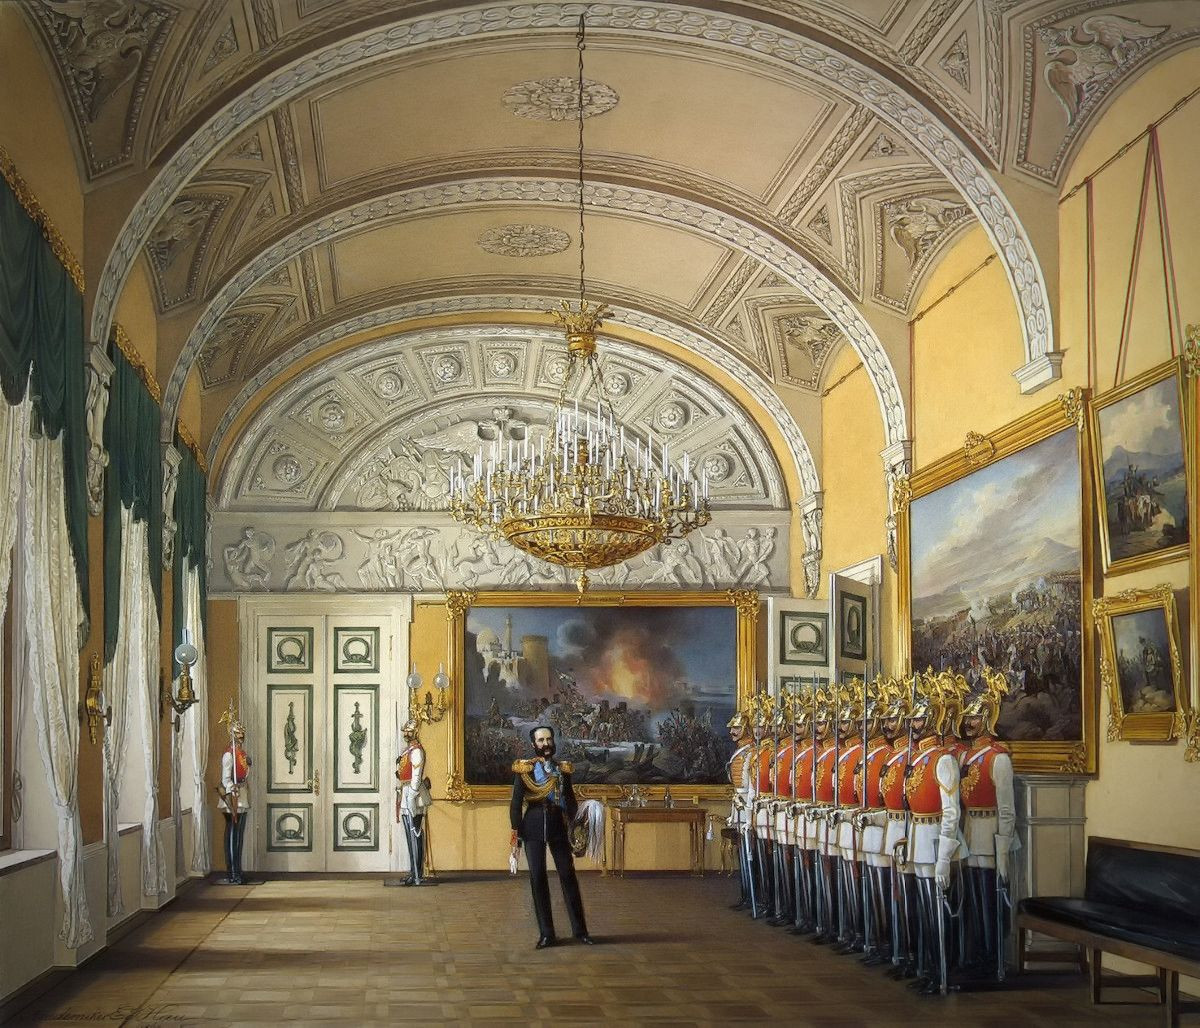 The Guardroom, 1863